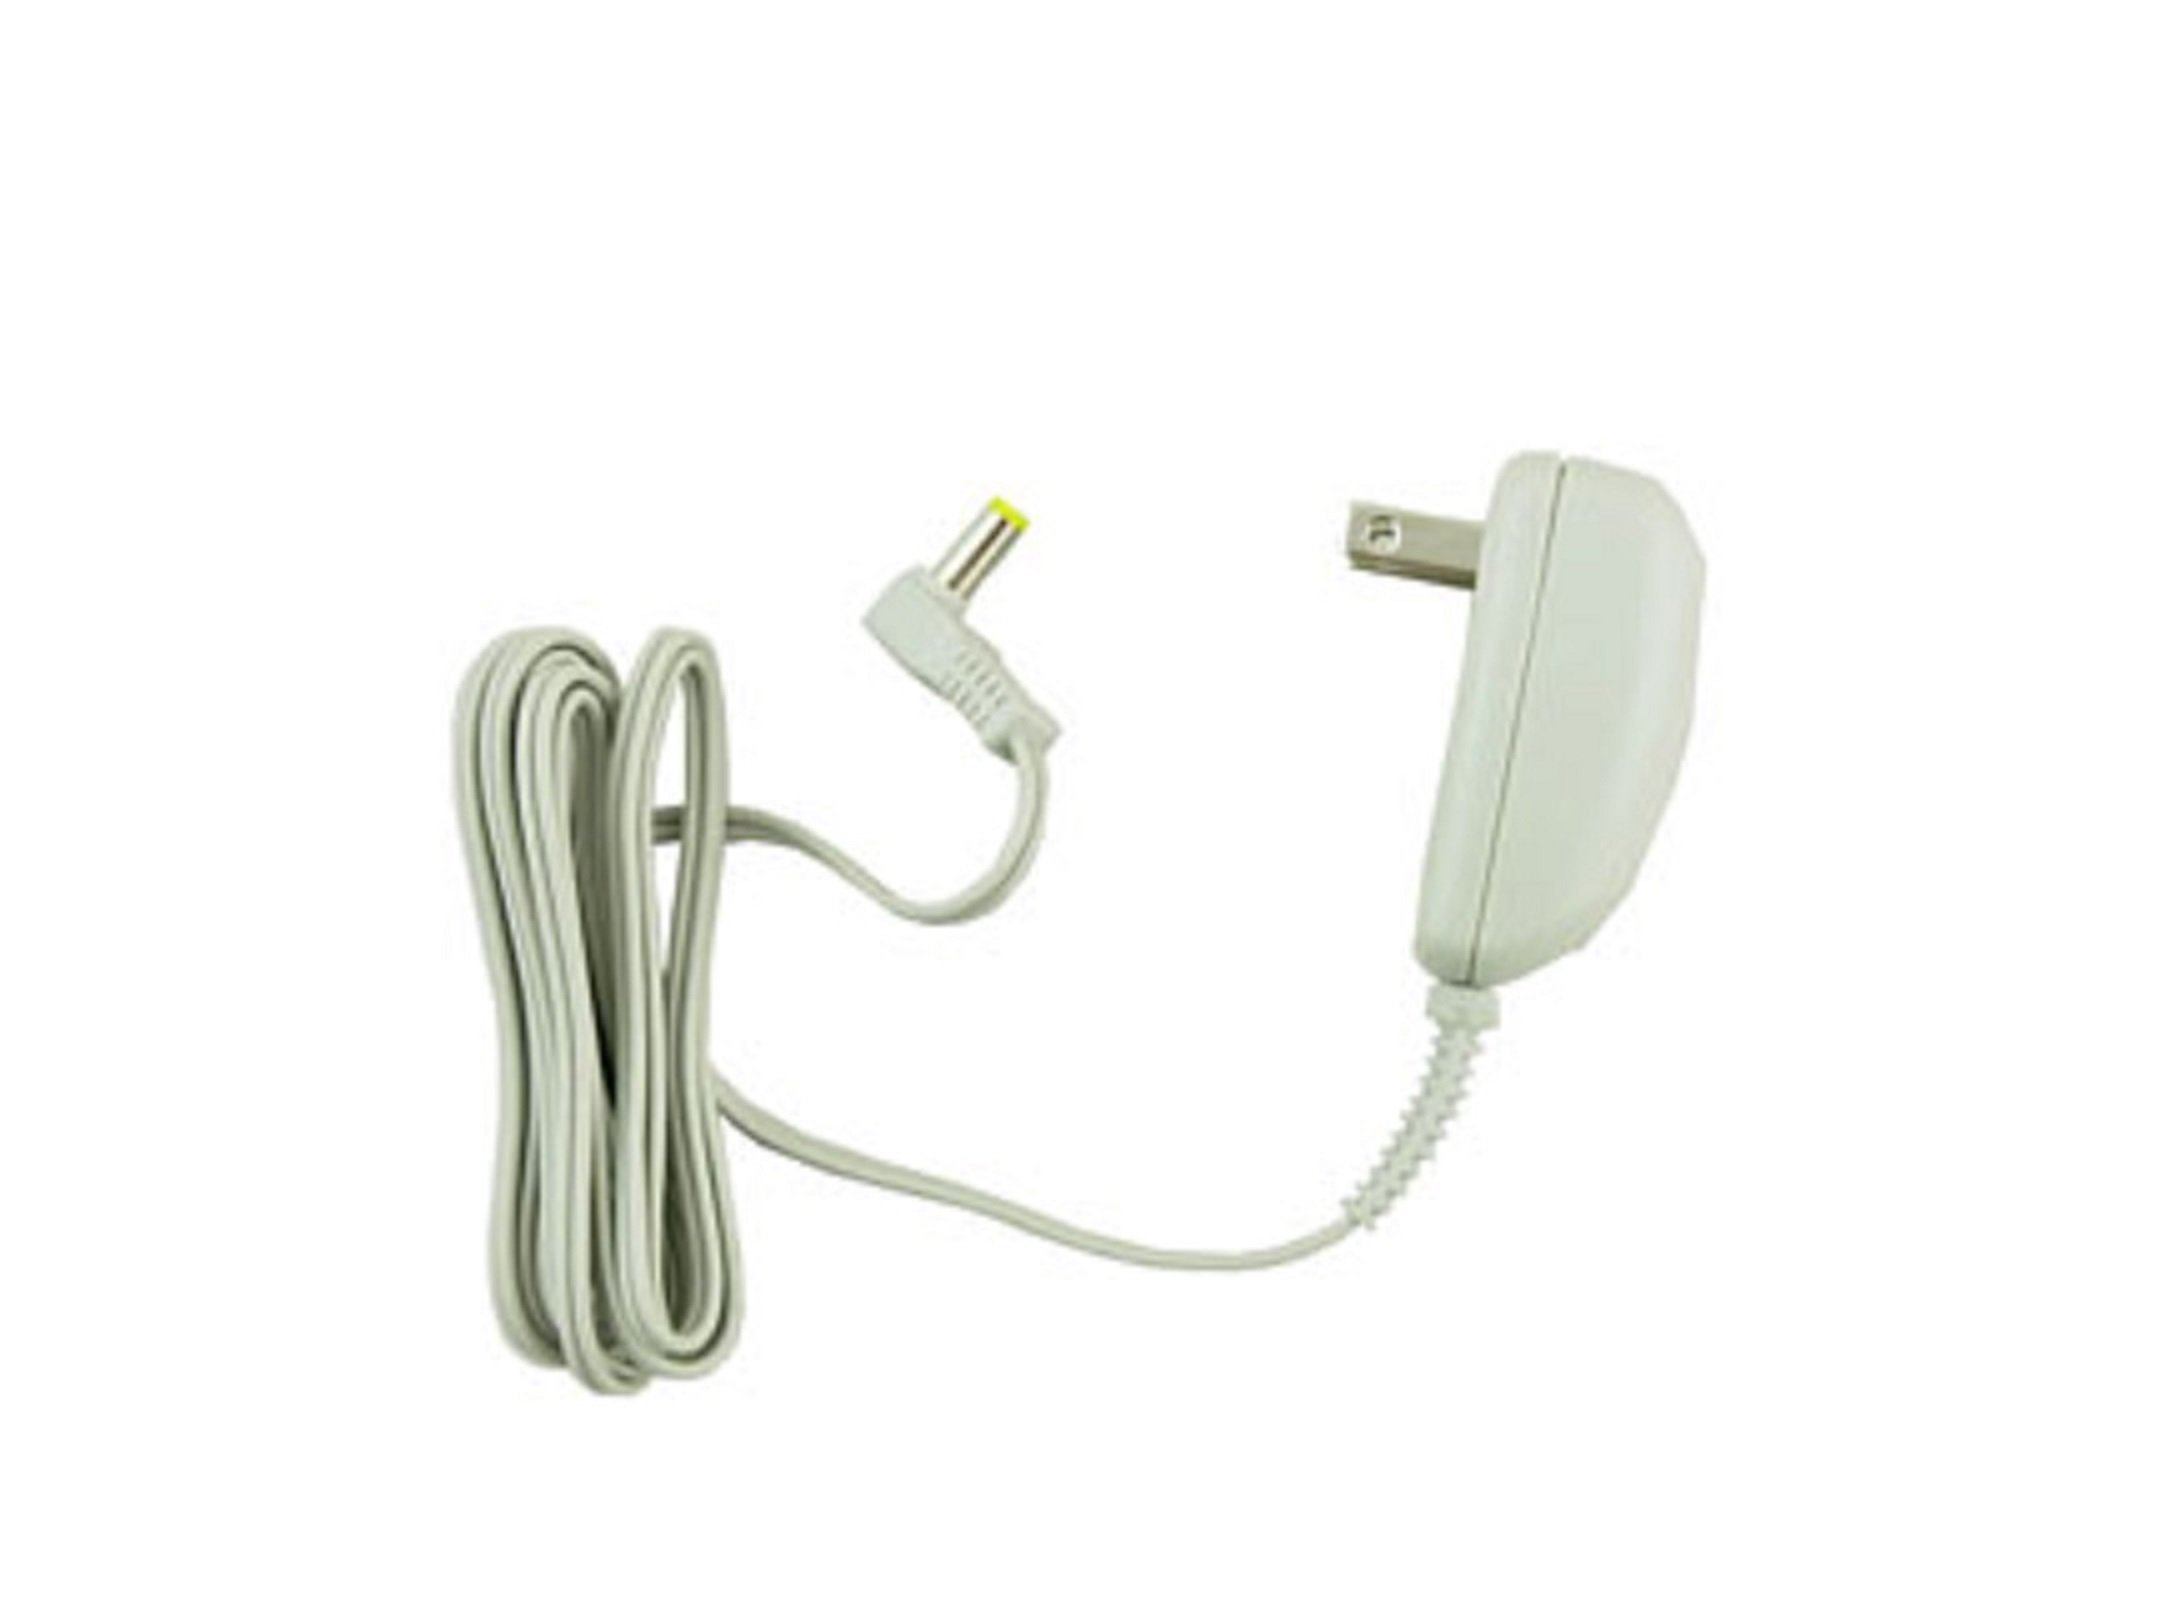 Fisher Price Replacement Swing Adaptor/Power Cord Gray L Type Connector